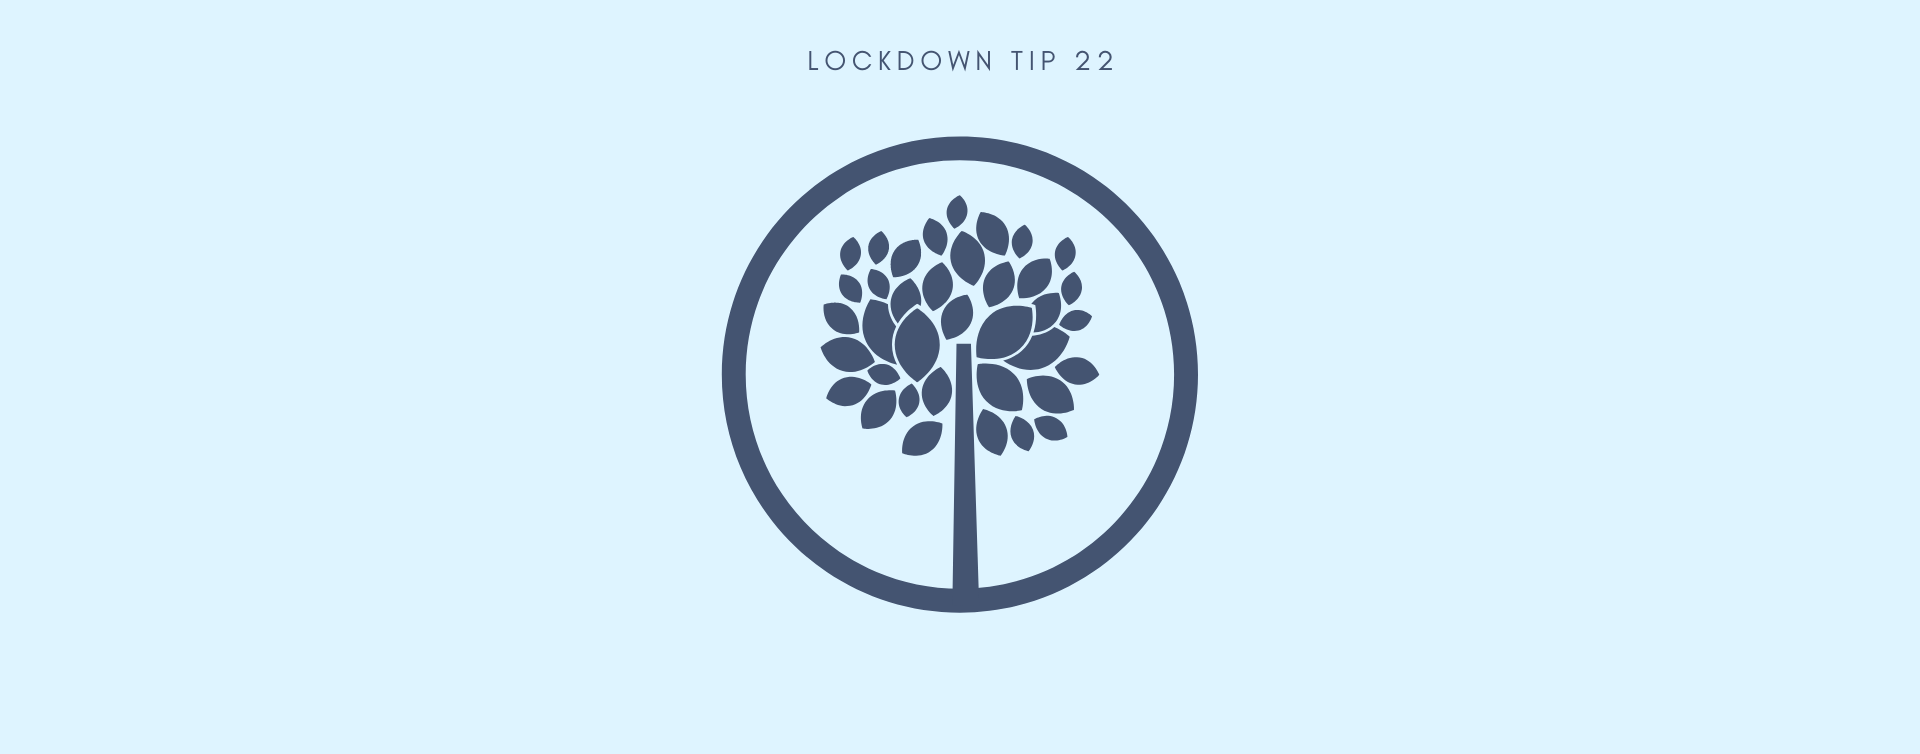 MCSA Lockdown Tip 22